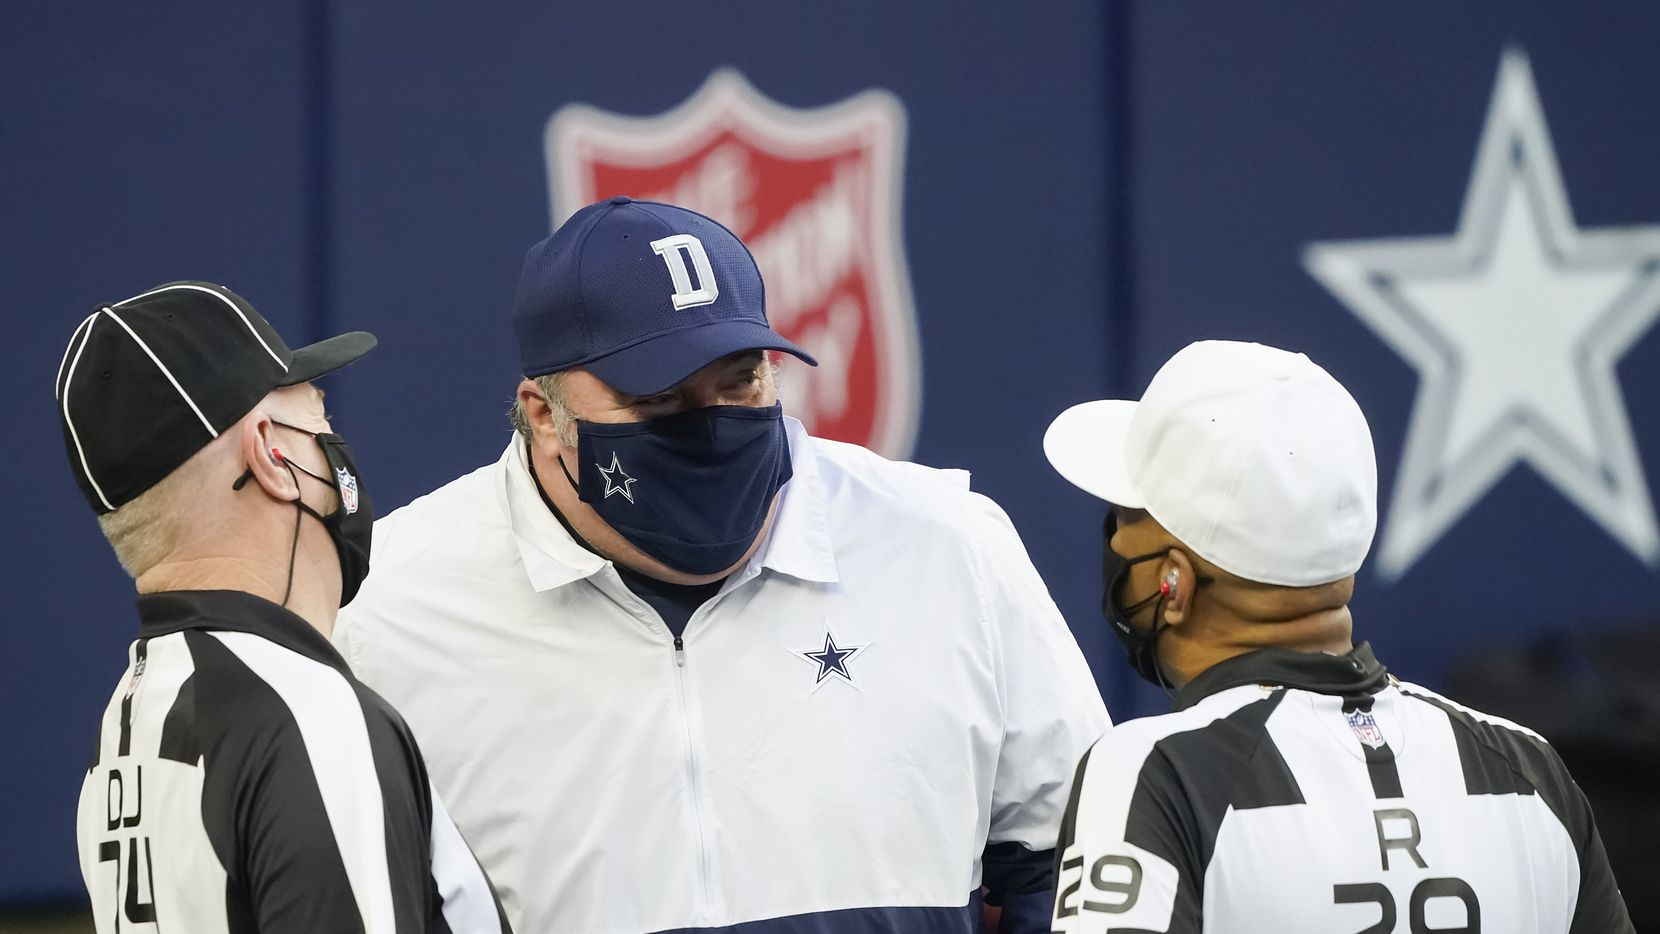 Dallas Cowboys head coach Mike McCarthy talks with officials before an NFL football game against the Philadelphia Eagles at AT&T Stadium on Sunday, Dec. 27, 2020, in Arlington.